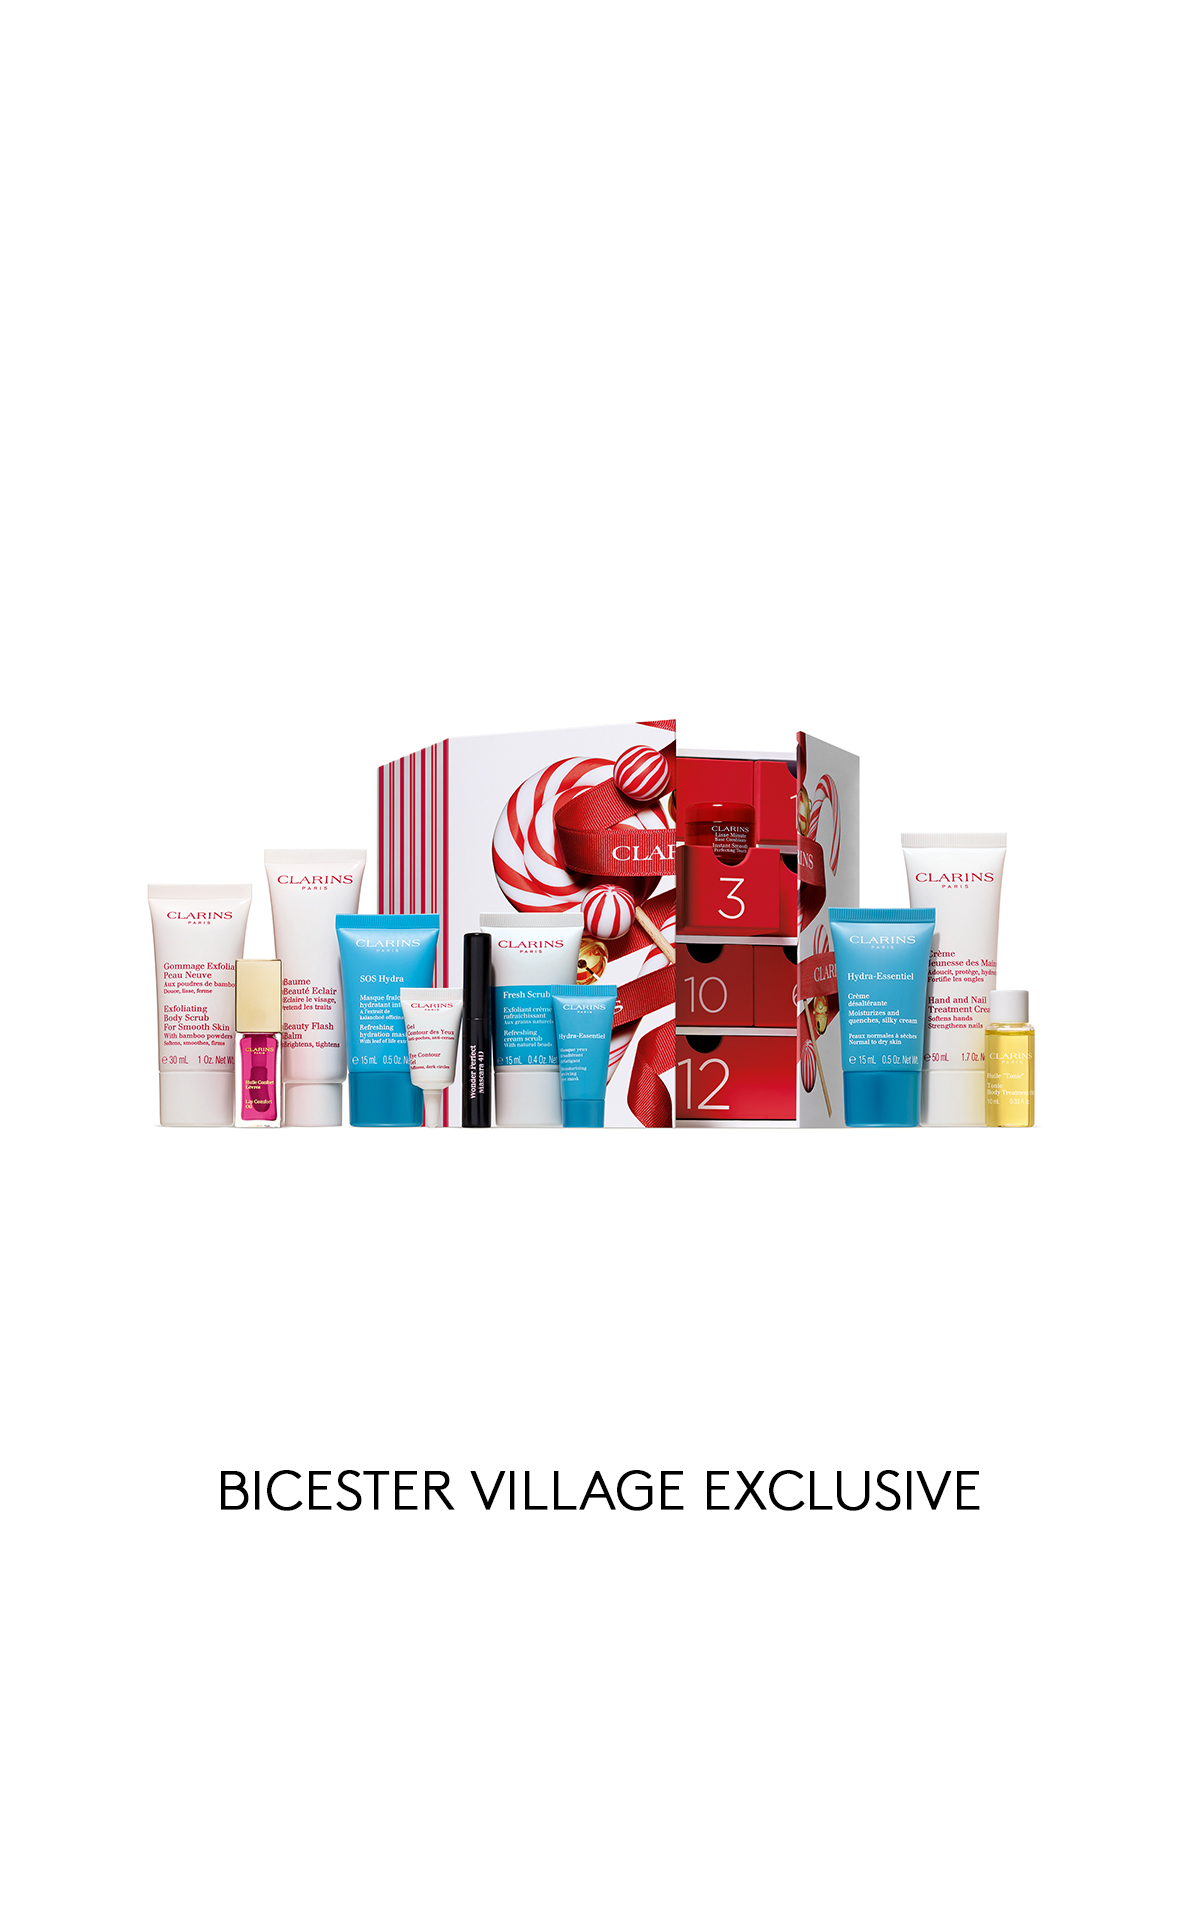 Clarins Women's advent calendar from Bicester Village